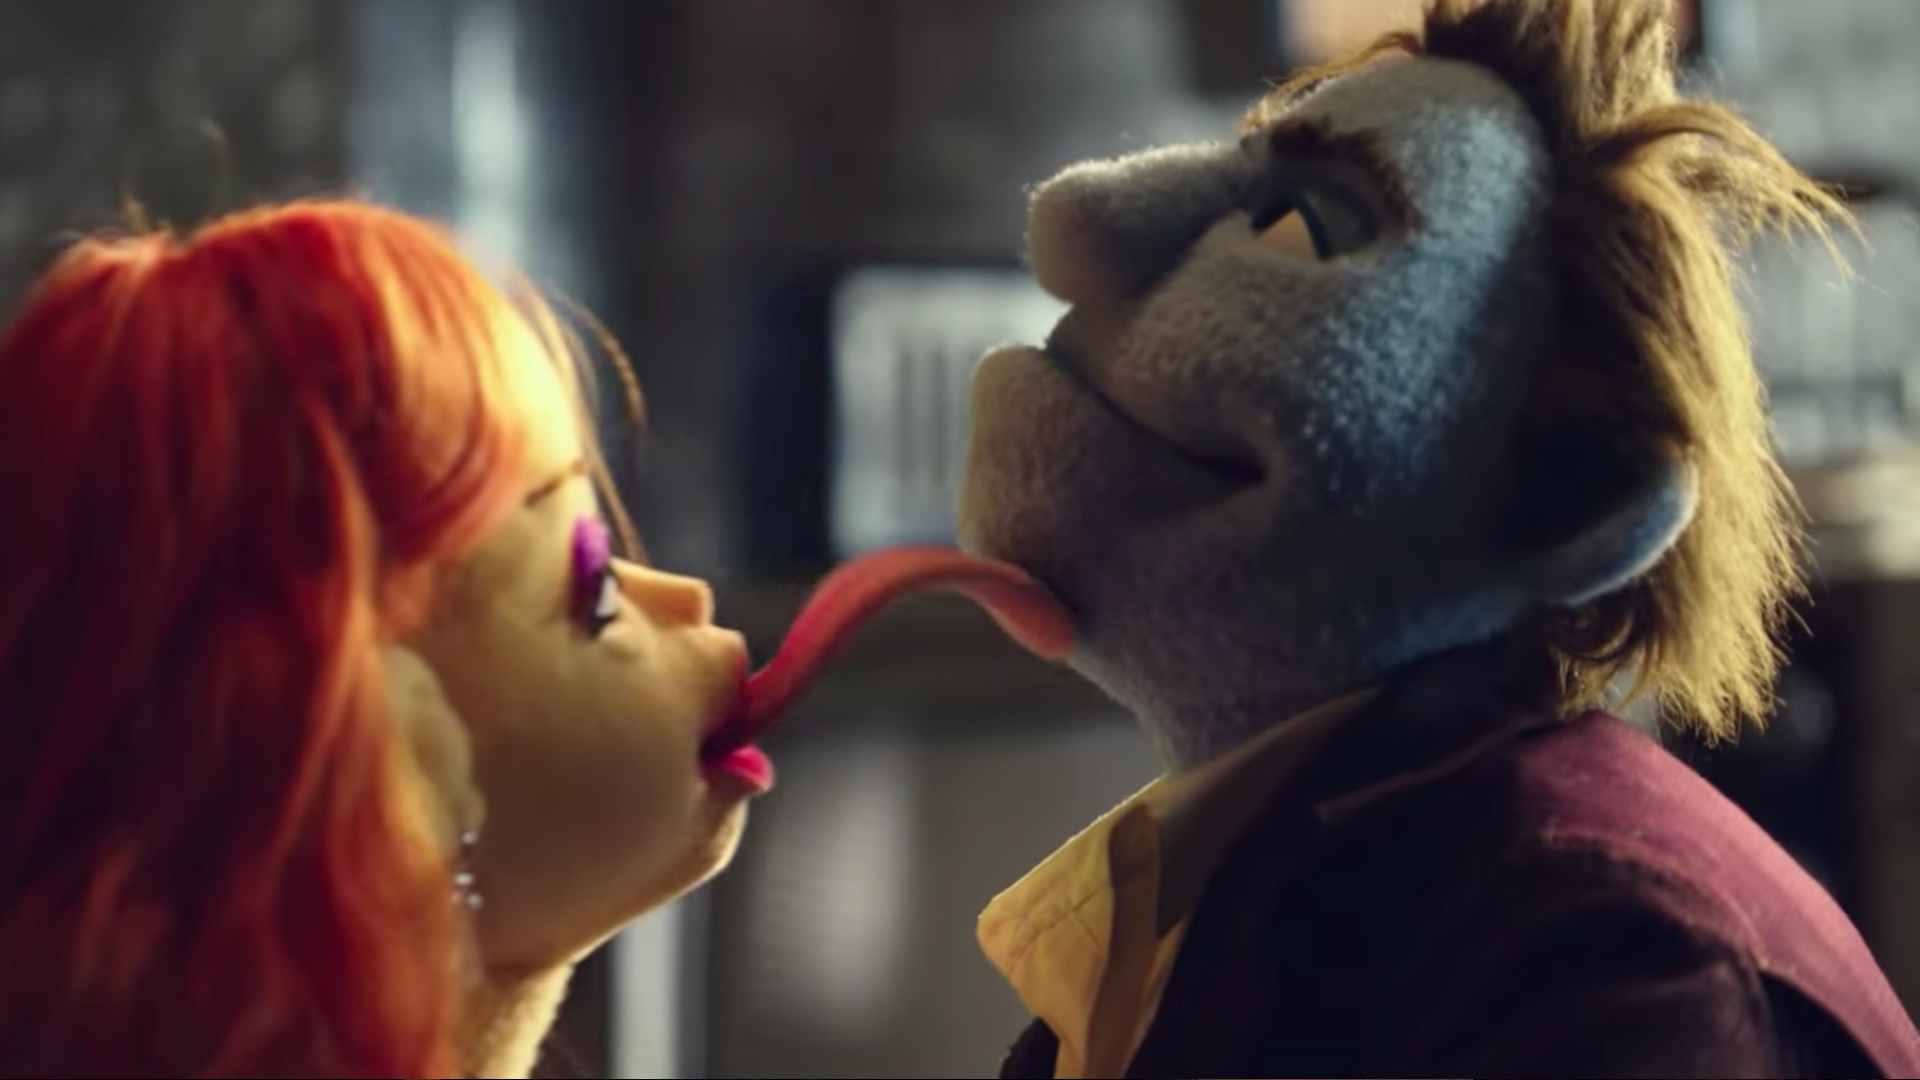 red-band-trailer-for-the-r-rated-puppet-crime-comedy-the-happytime-murders-social.jpg